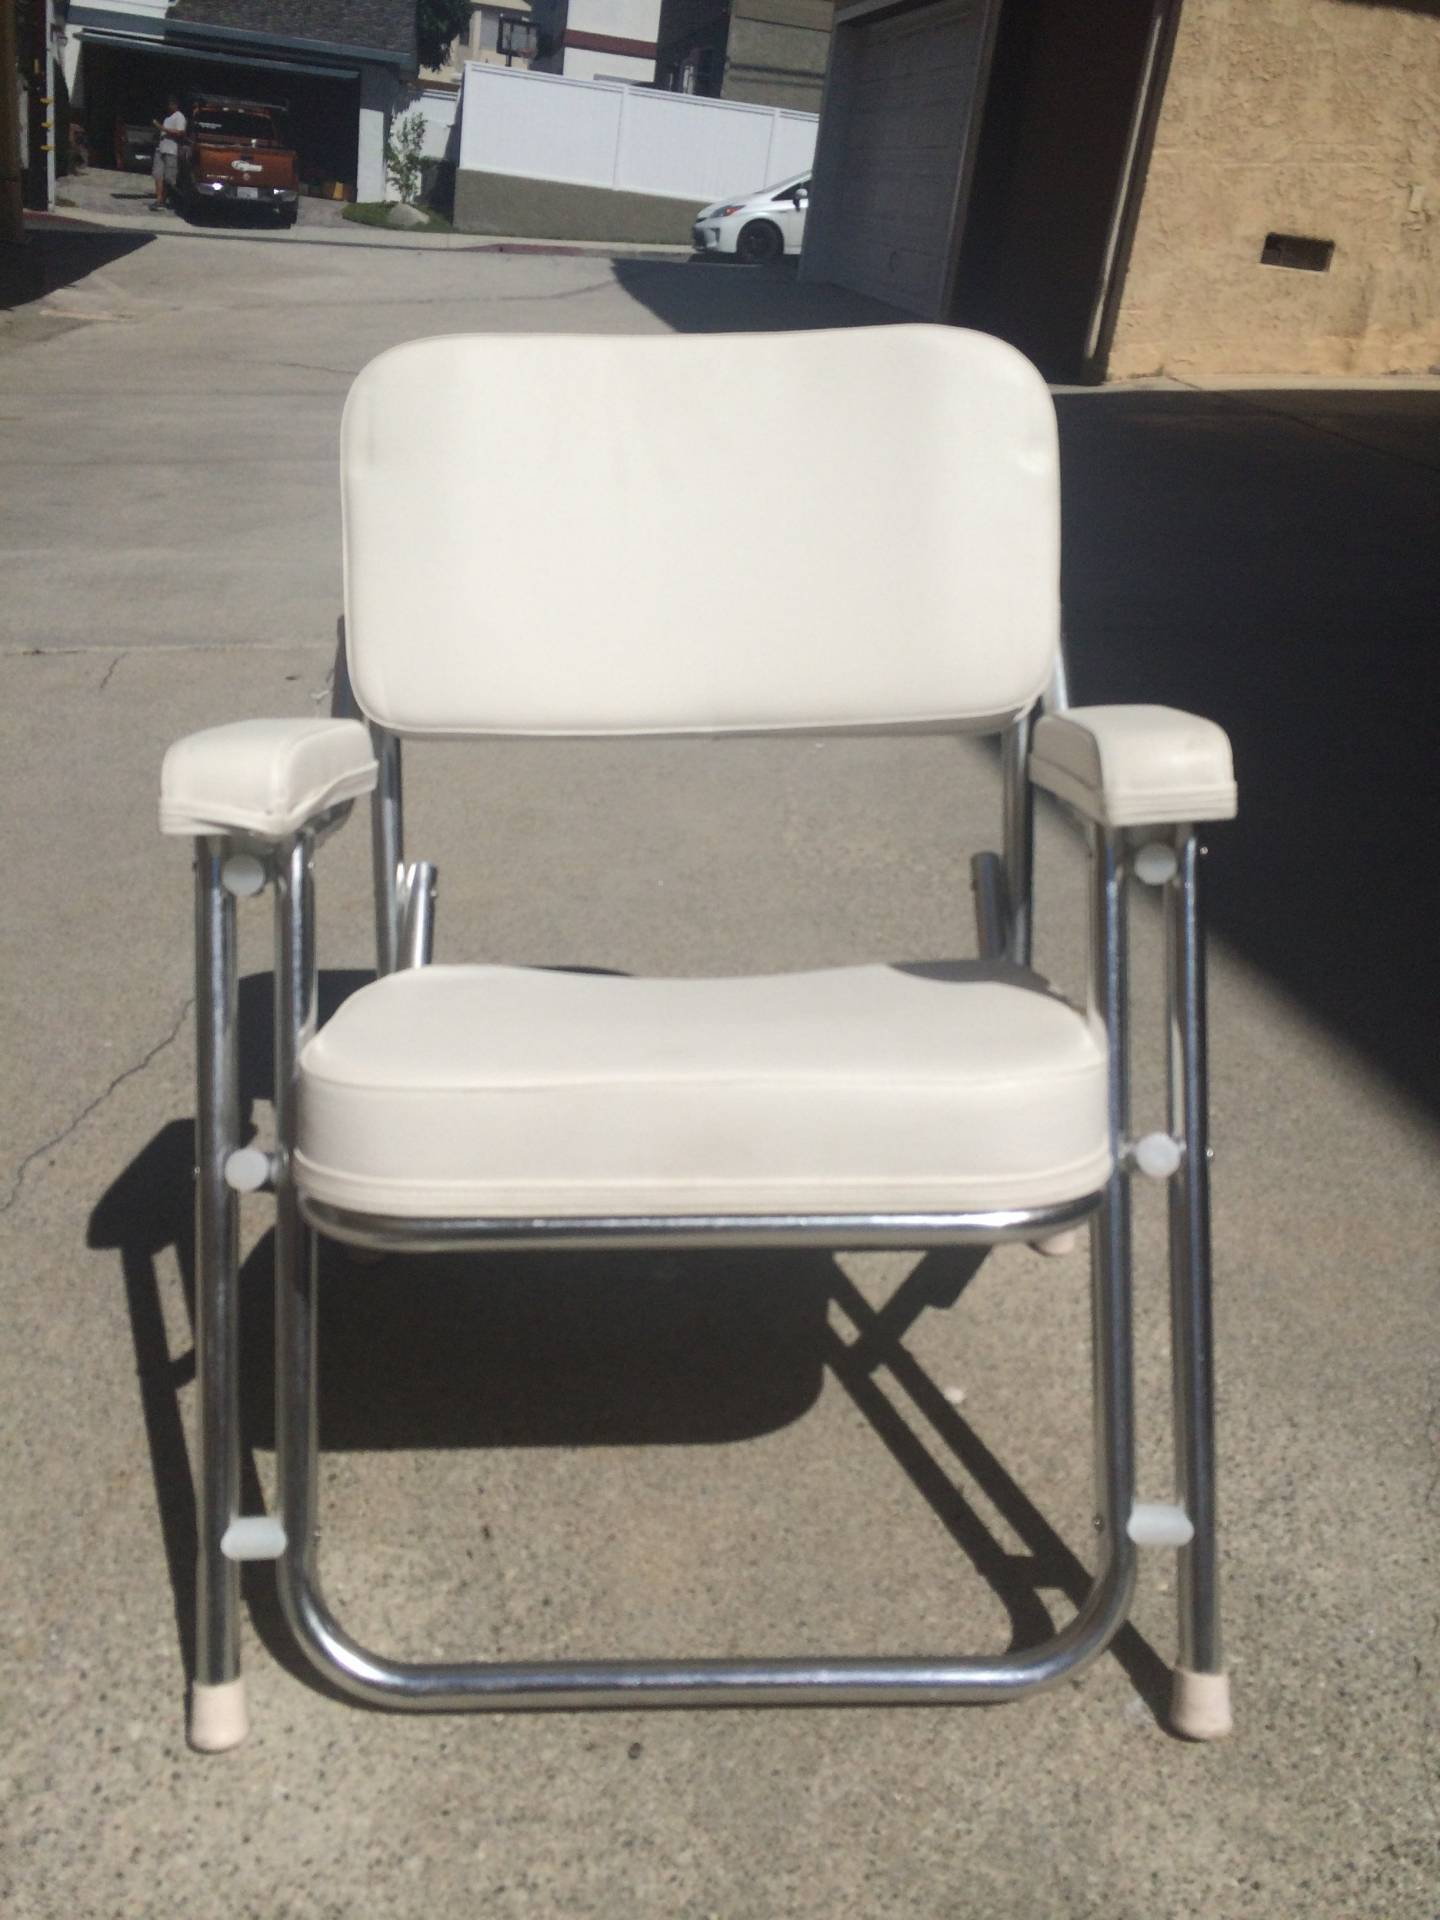 Two West Marine Aluminum Cushion Deck Chairs